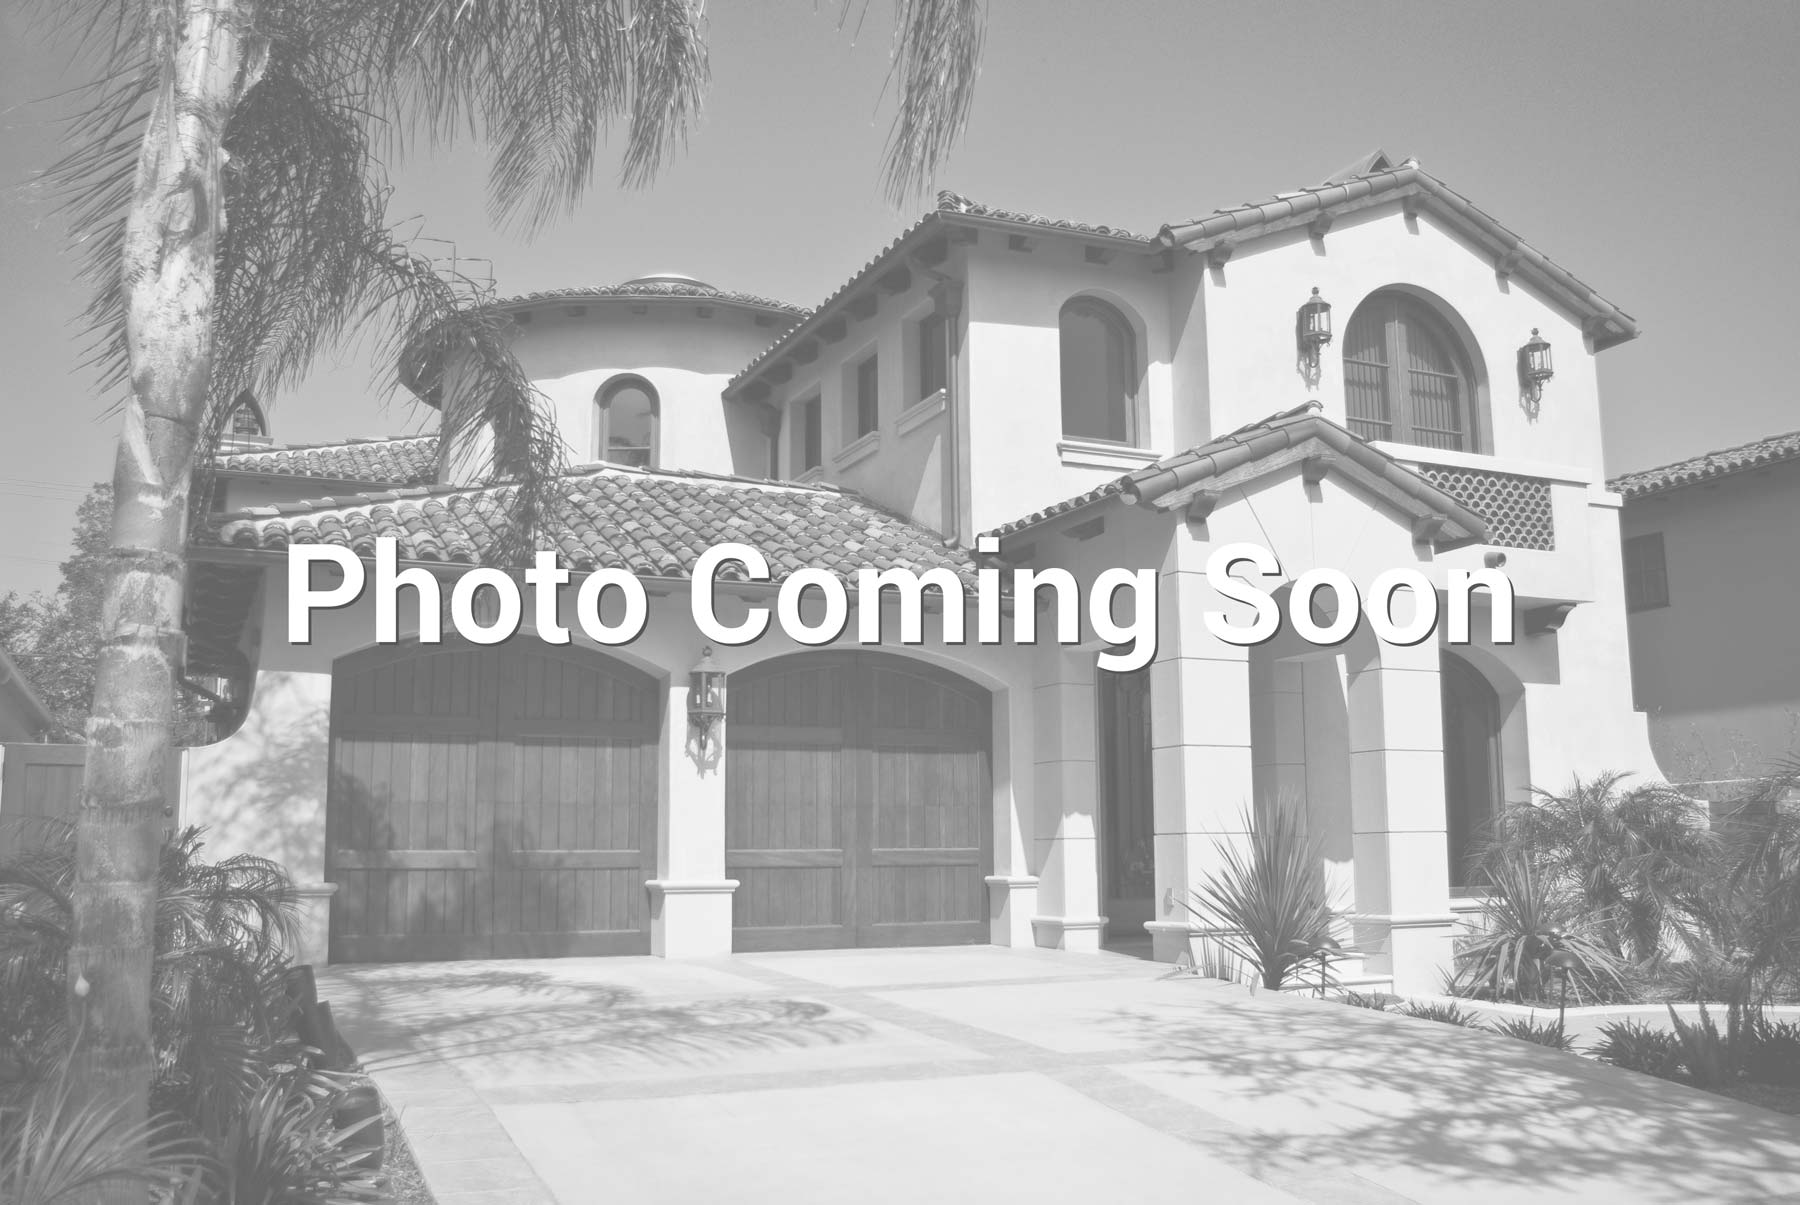 $2,650 - 3Br/2Ba -  for Sale in Not Applicable-659 (na659), Tujunga